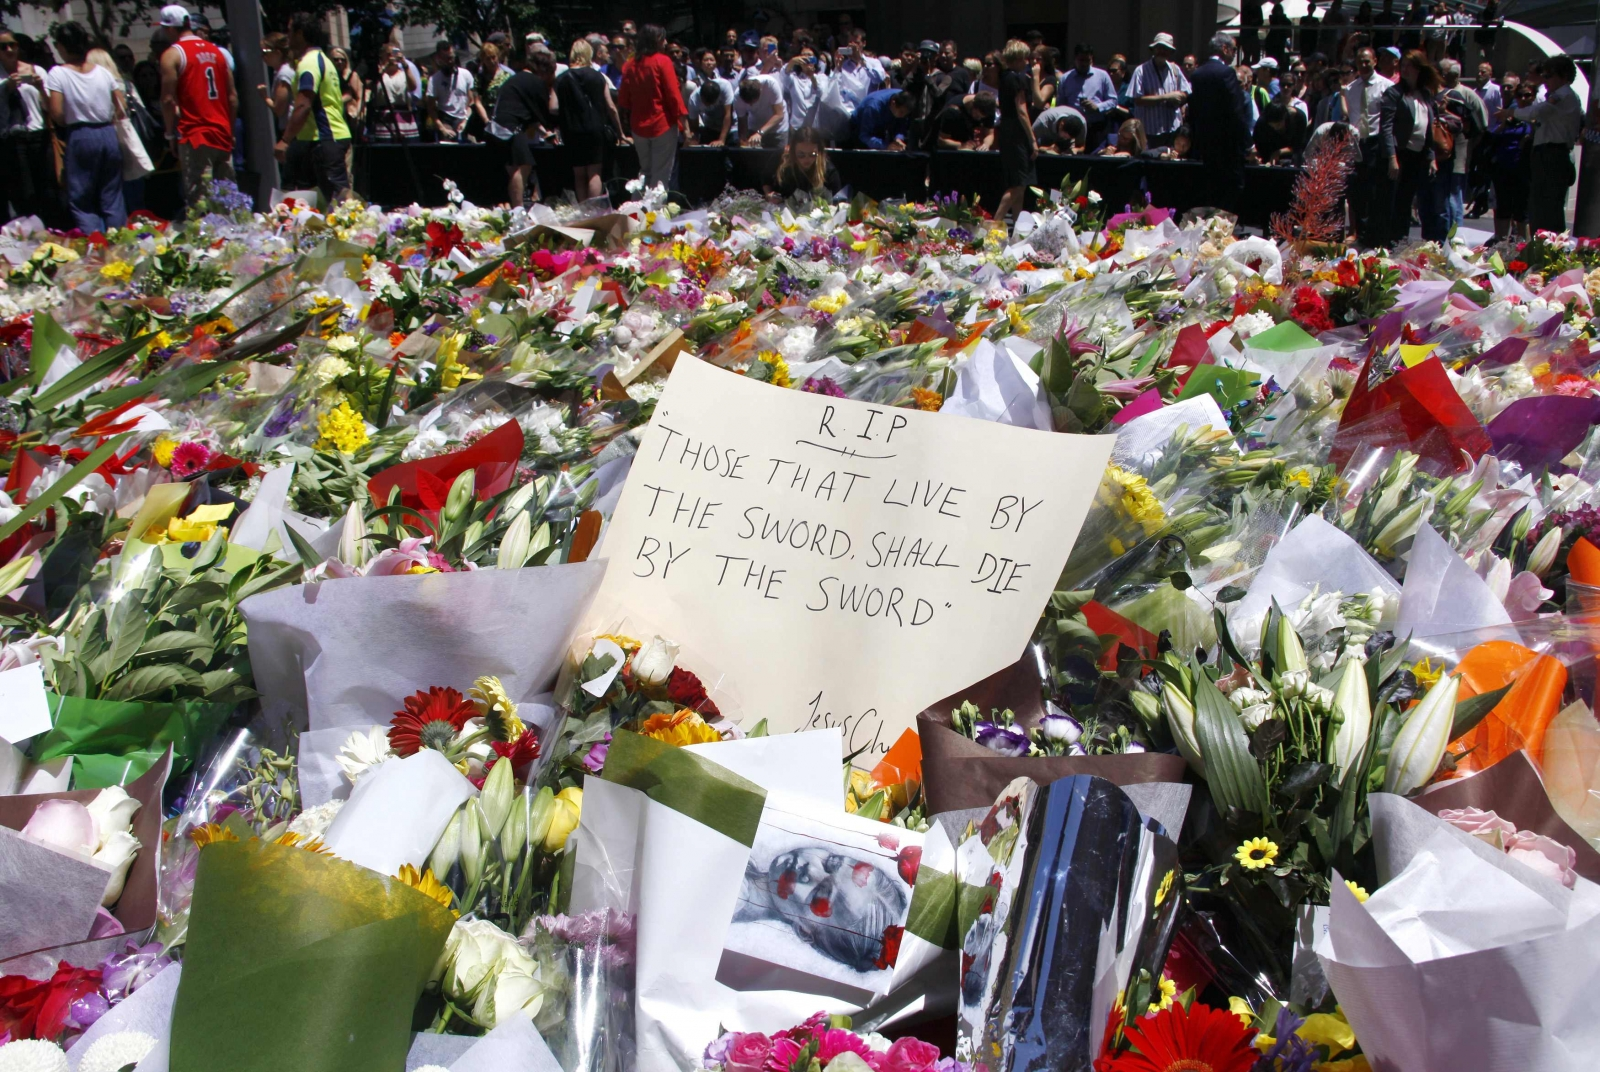 Sydney Siege: Australian authorities begin investigation as tributes pour in